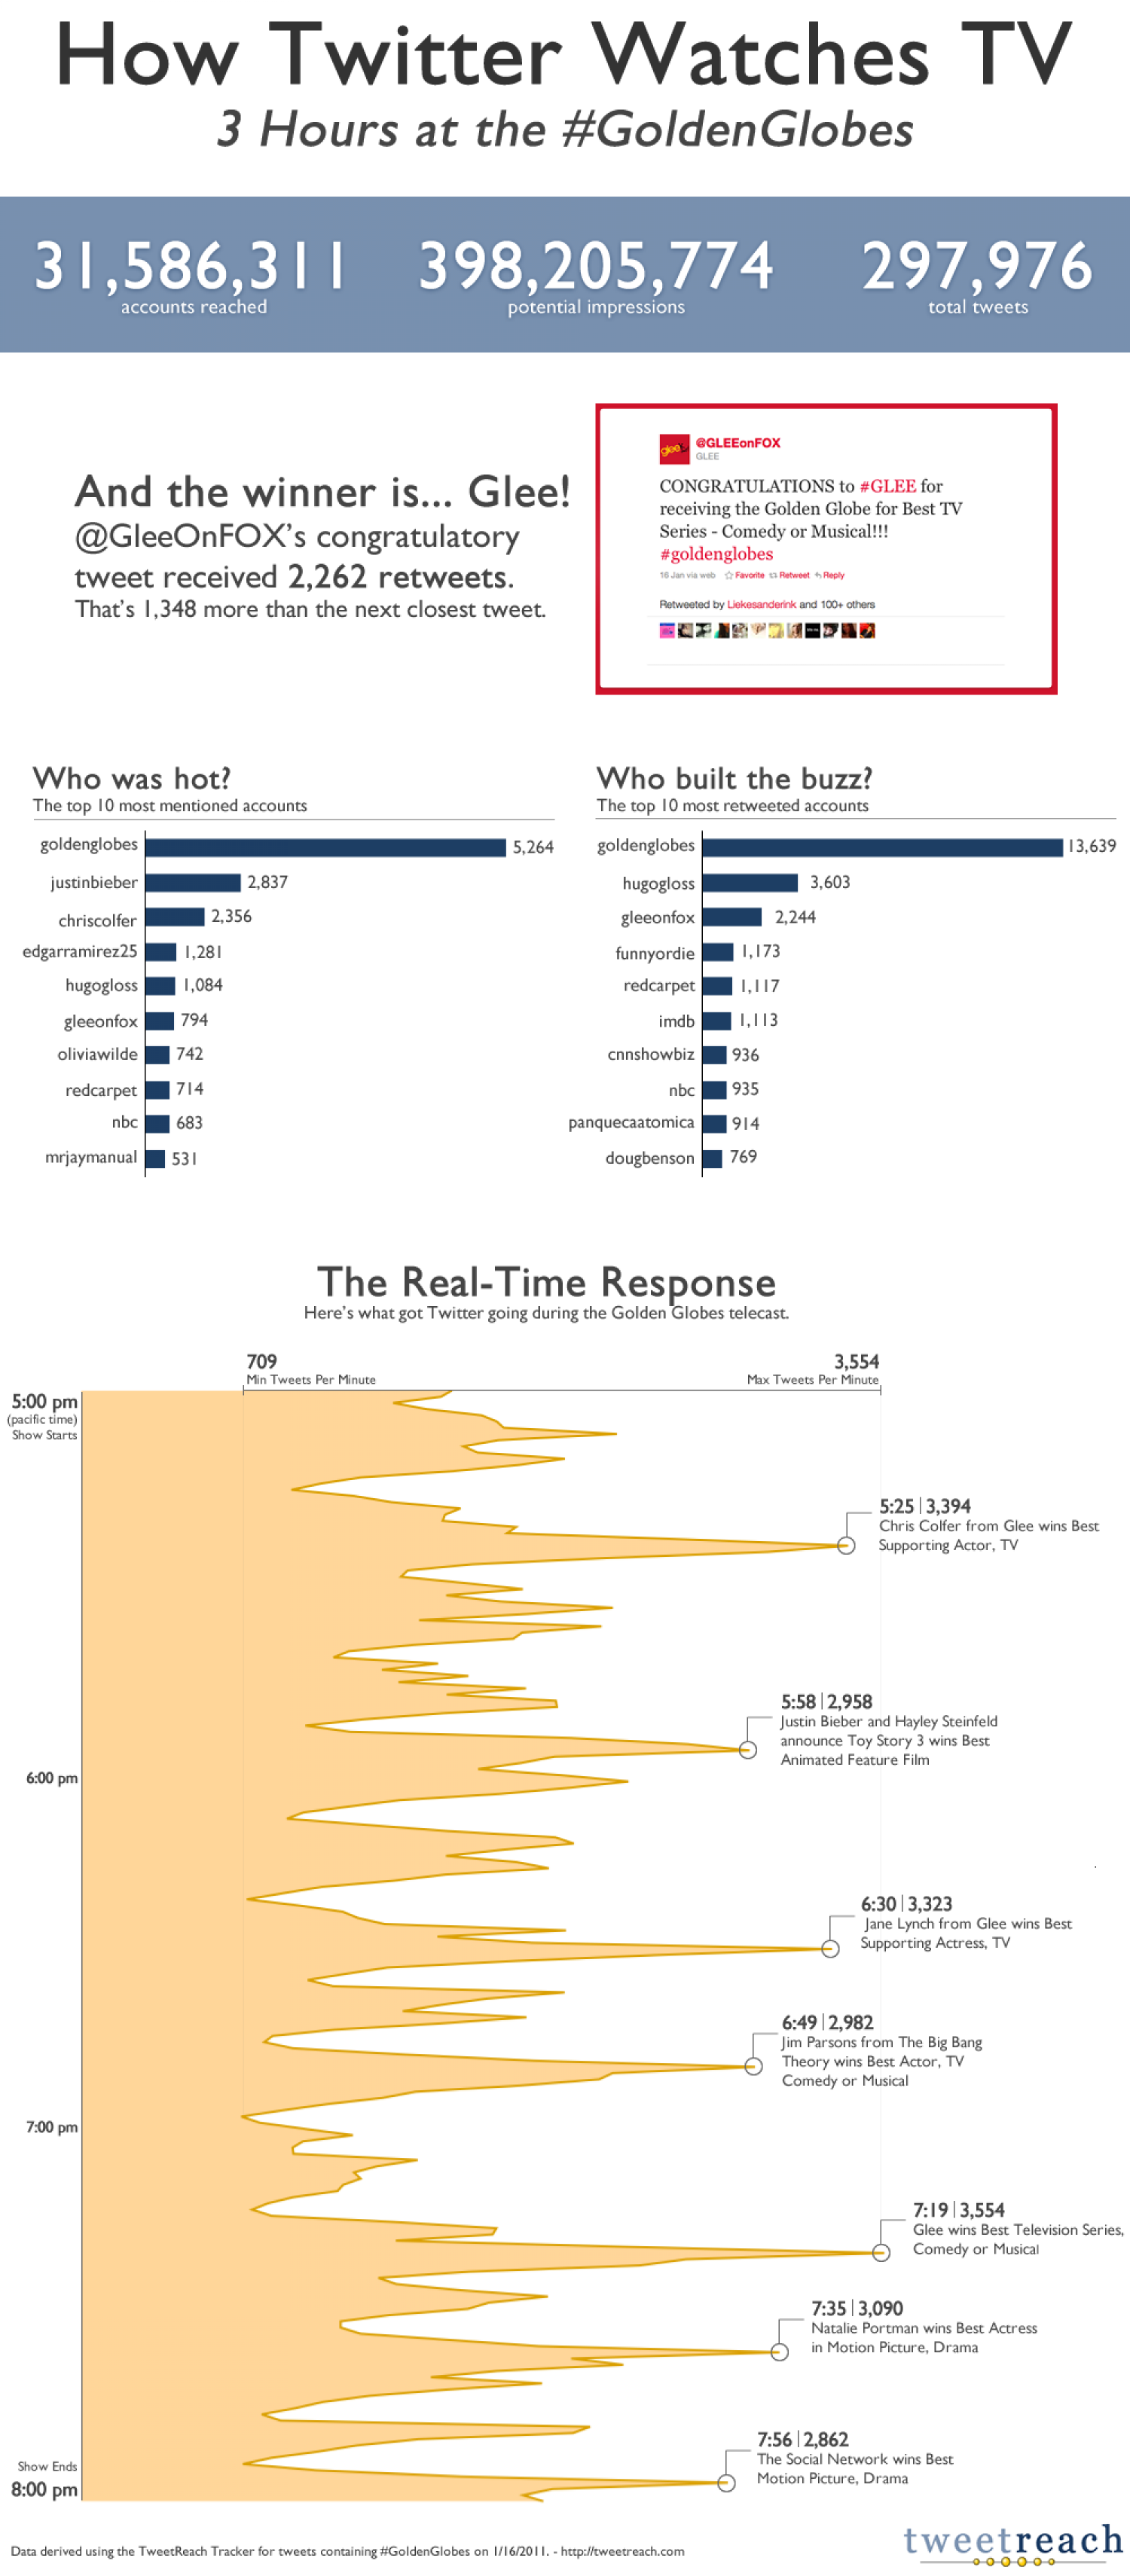 How Twitter watches TV or the Golden Globes Infographic